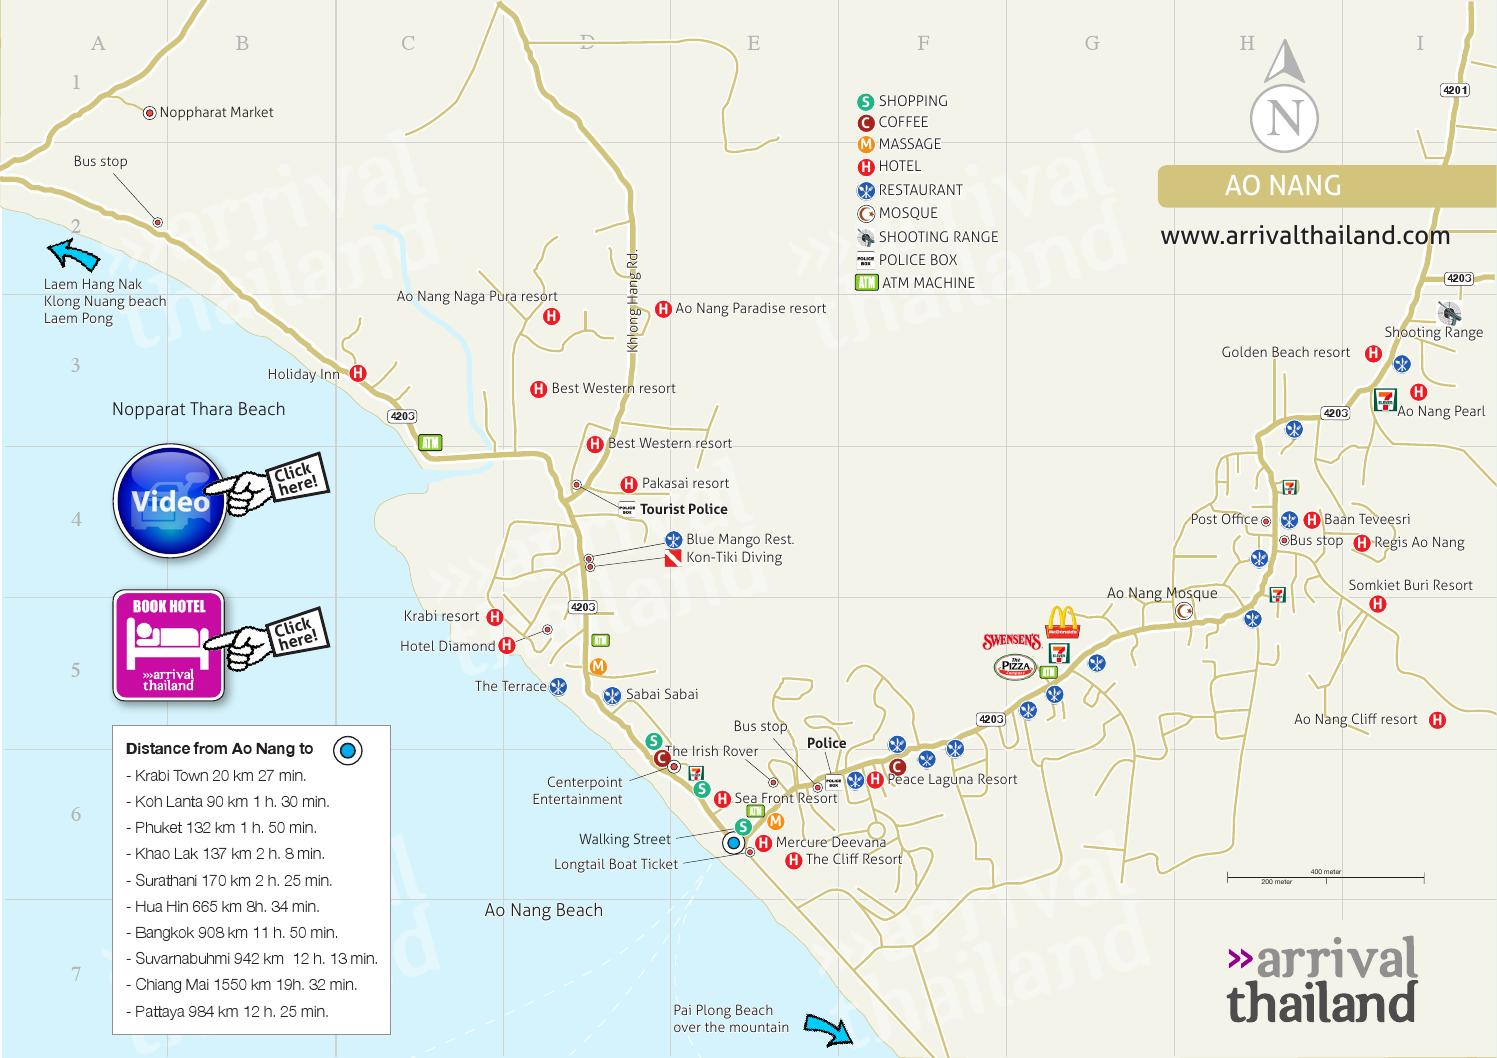 Arrival Thailand Ao Nang Map By Arrival Thailand Issuu